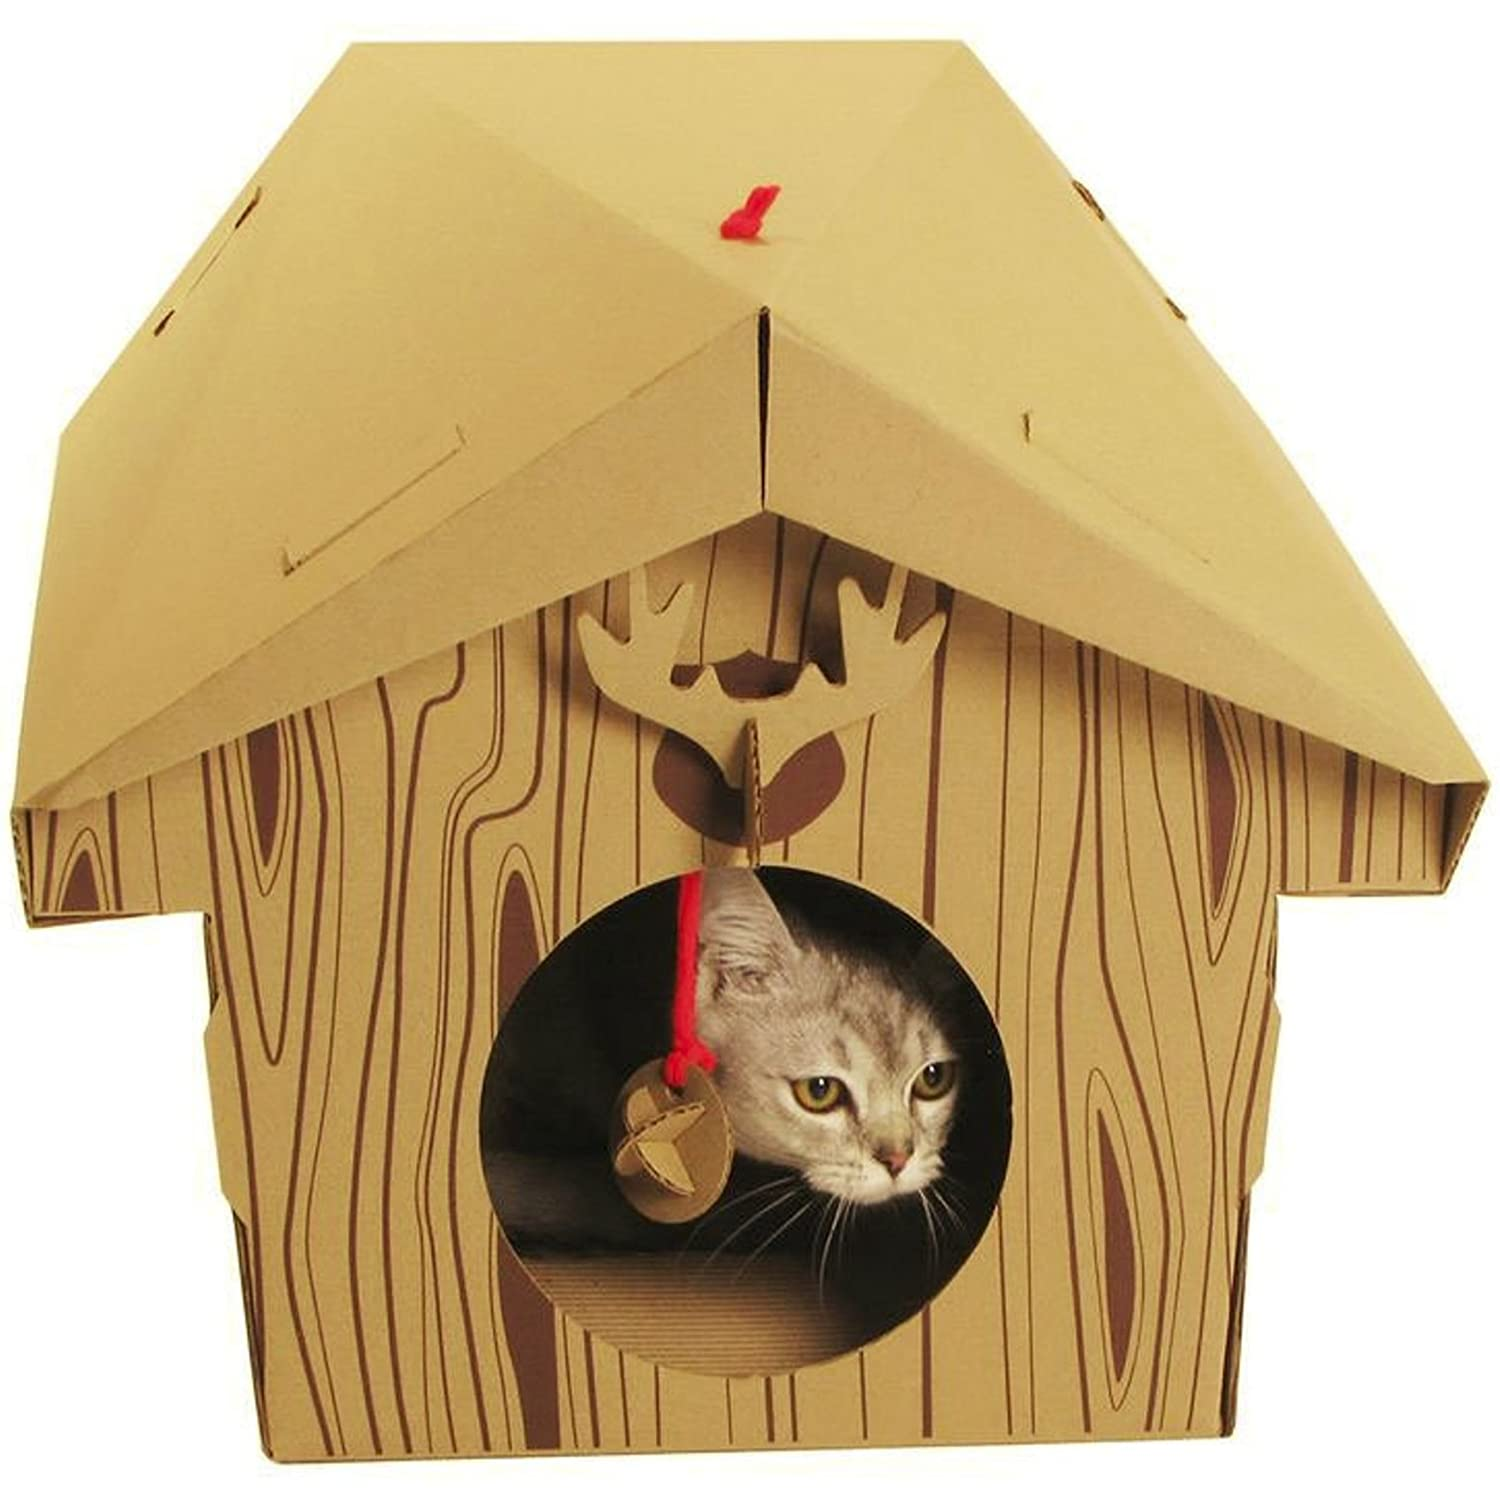 Suck UK Cat Play House Cabin Amazoncouk Pet Supplies - This company makes cardboard tanks houses and planes for cats and theyre perfect